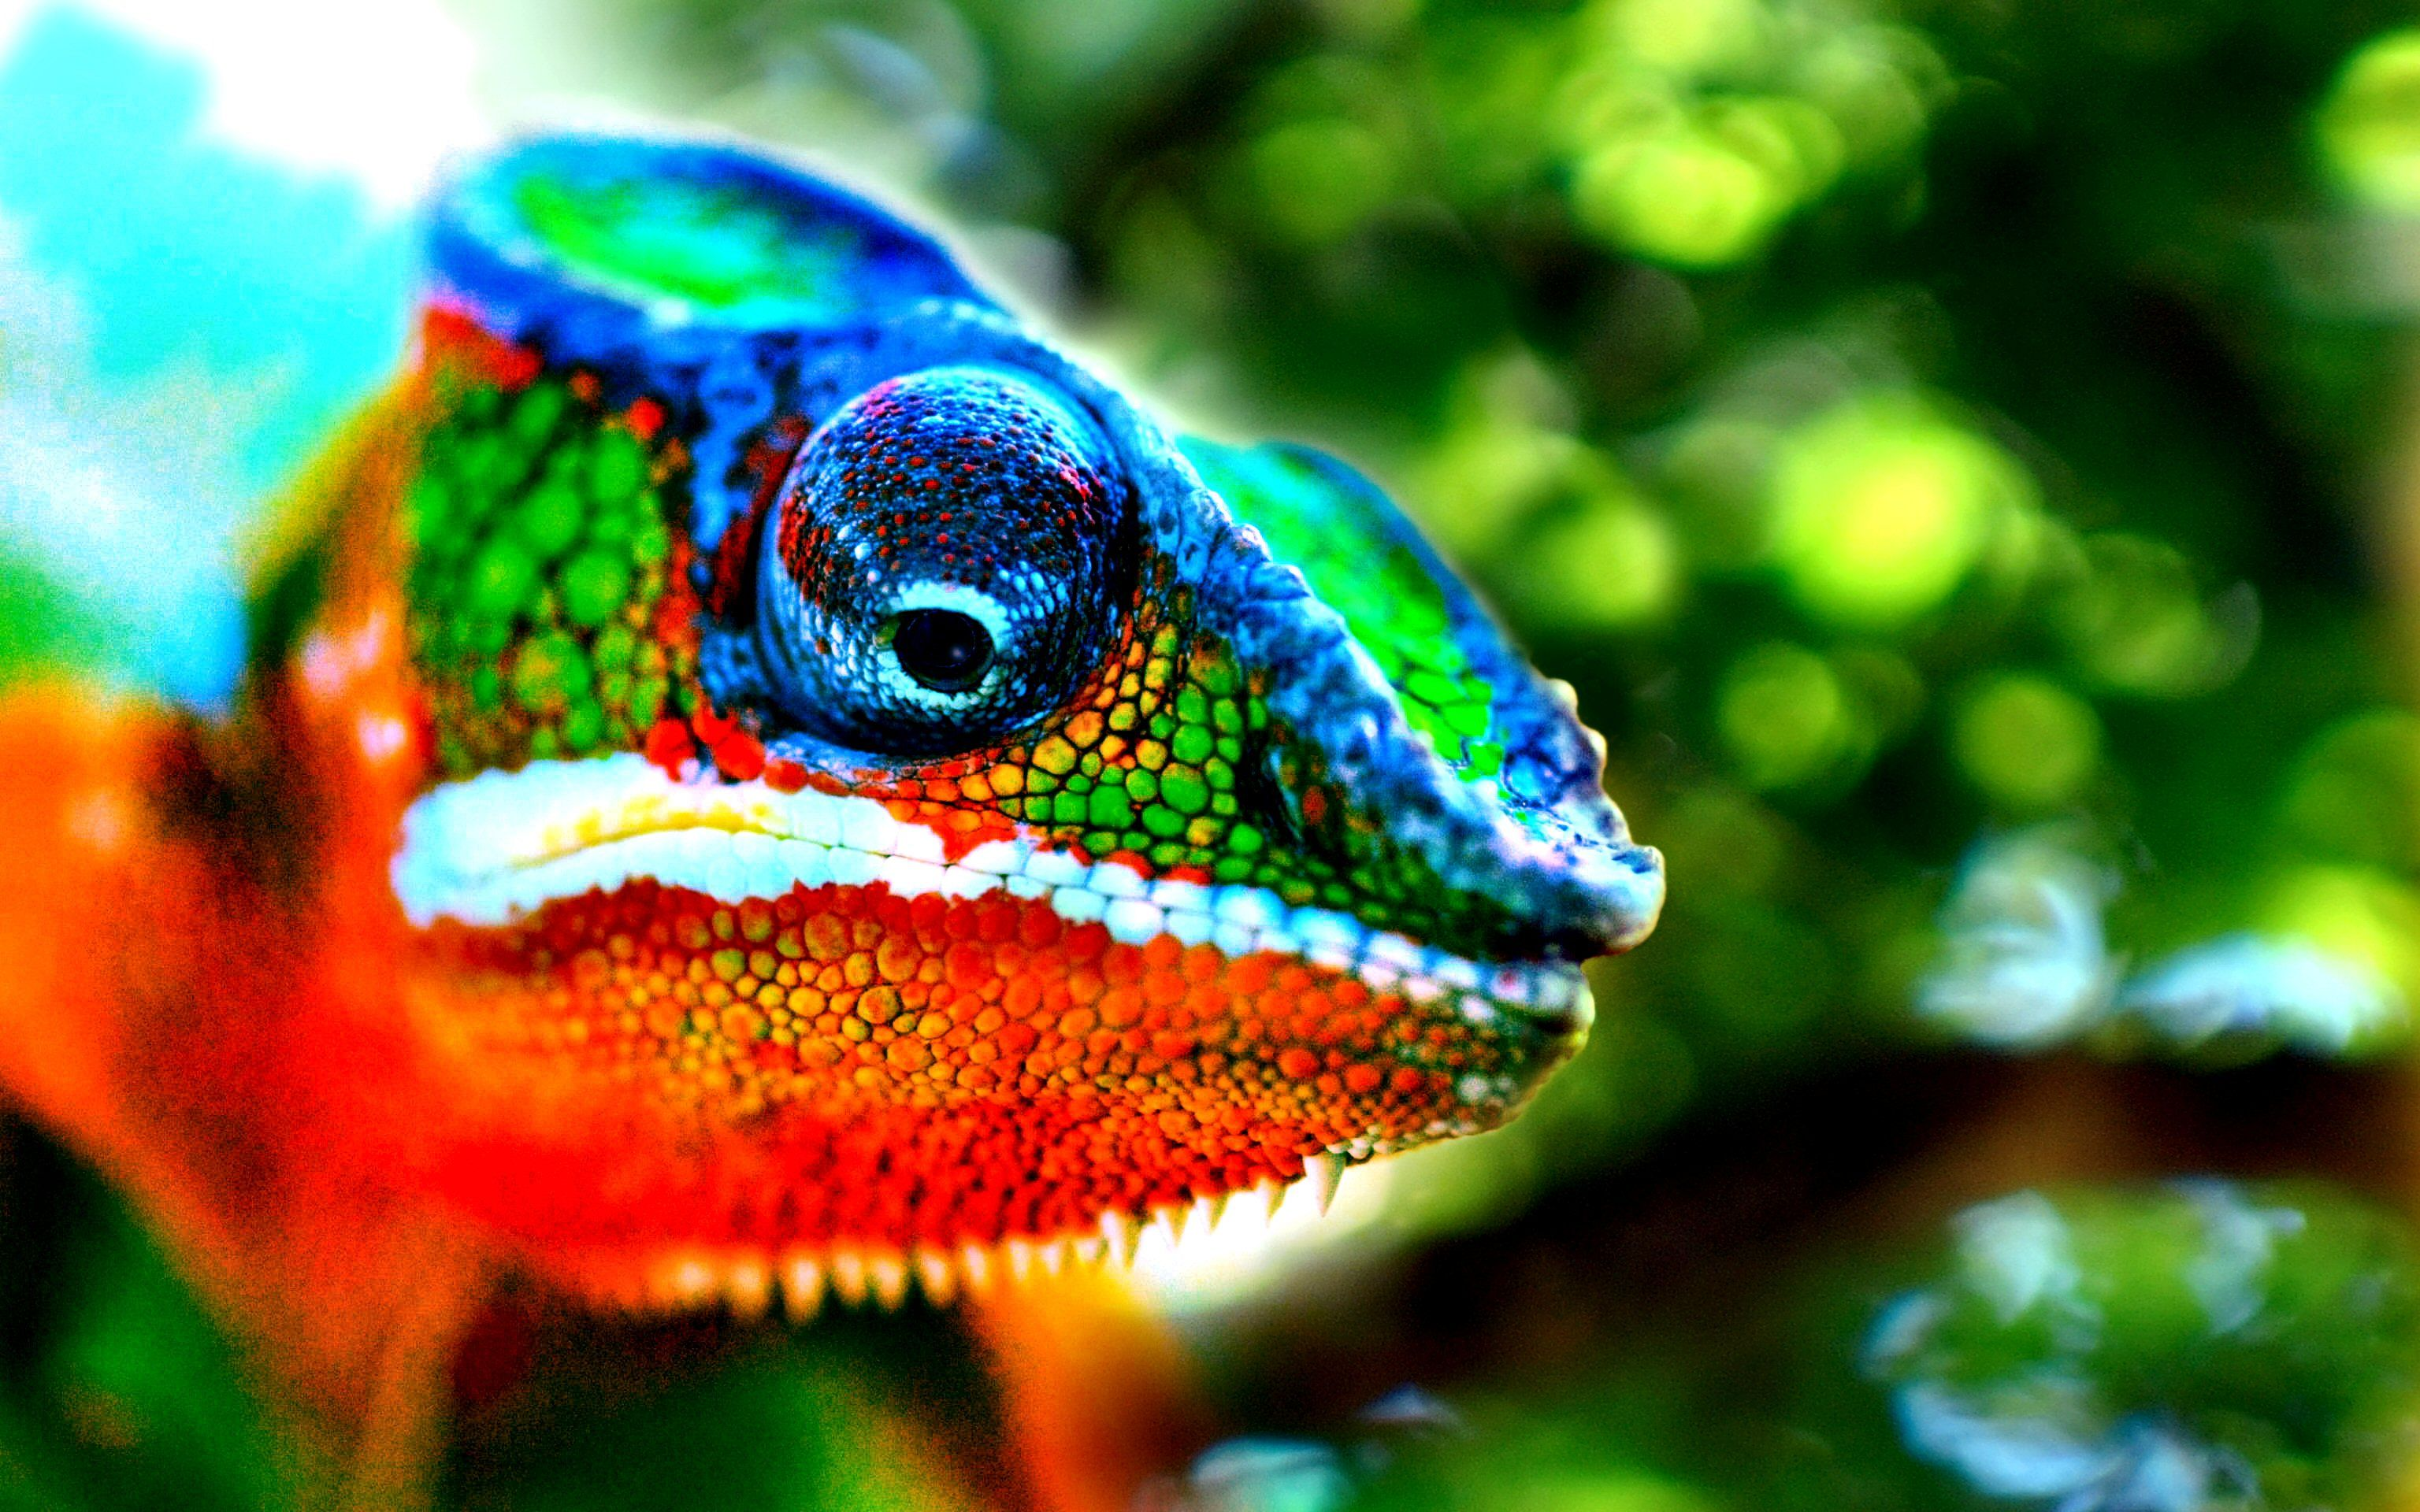 Animal Desktop Backgrounds High Definition Chameleon トカゲ